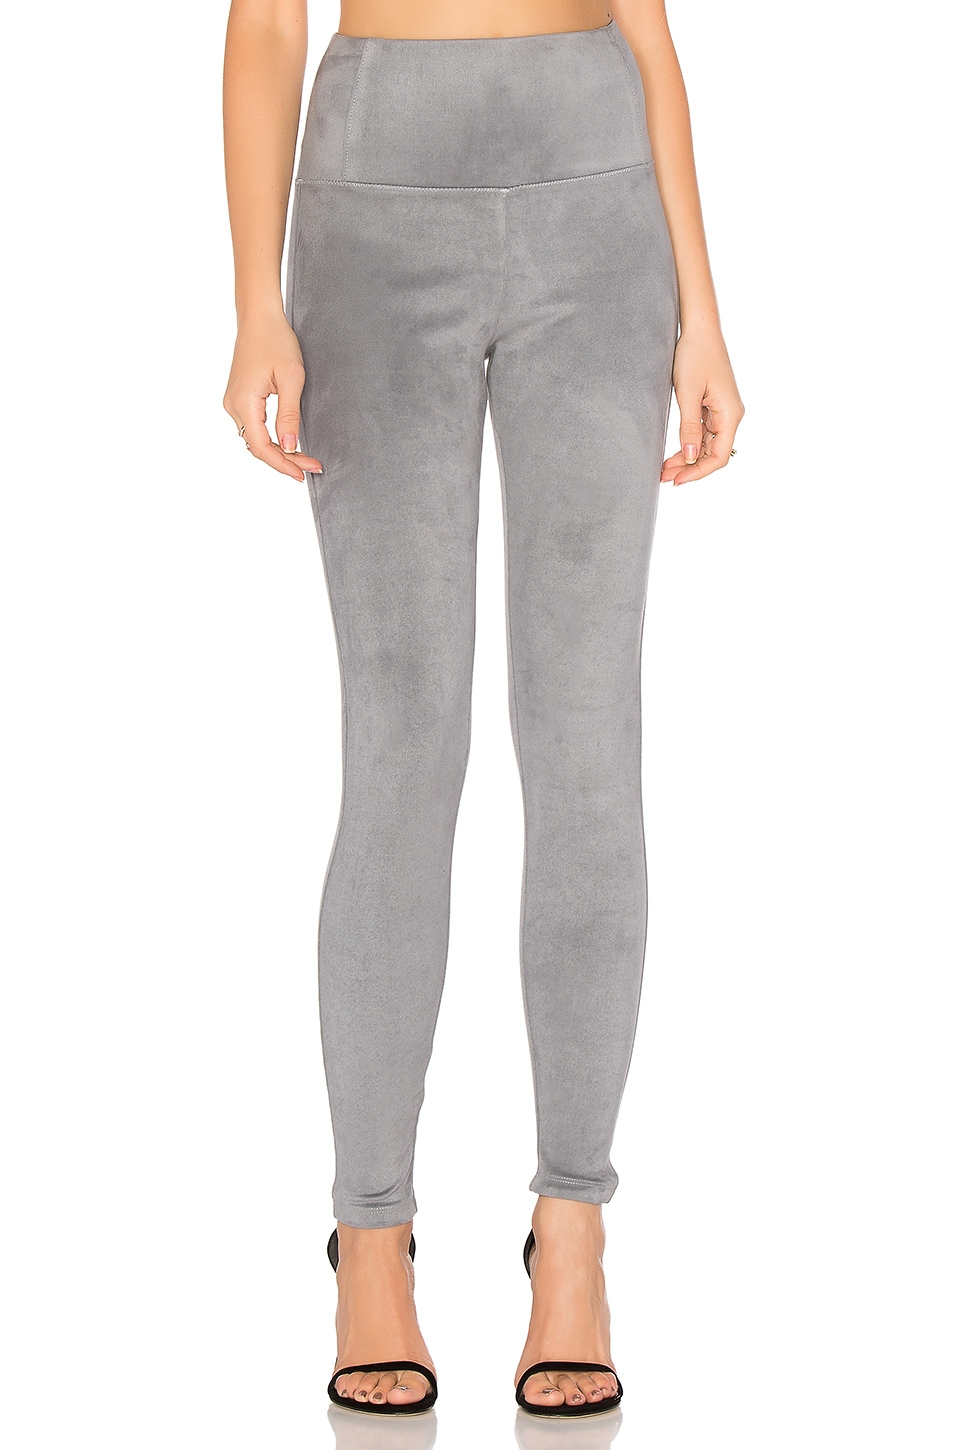 David Lerner Elliott Micro Suede Legging in Grey